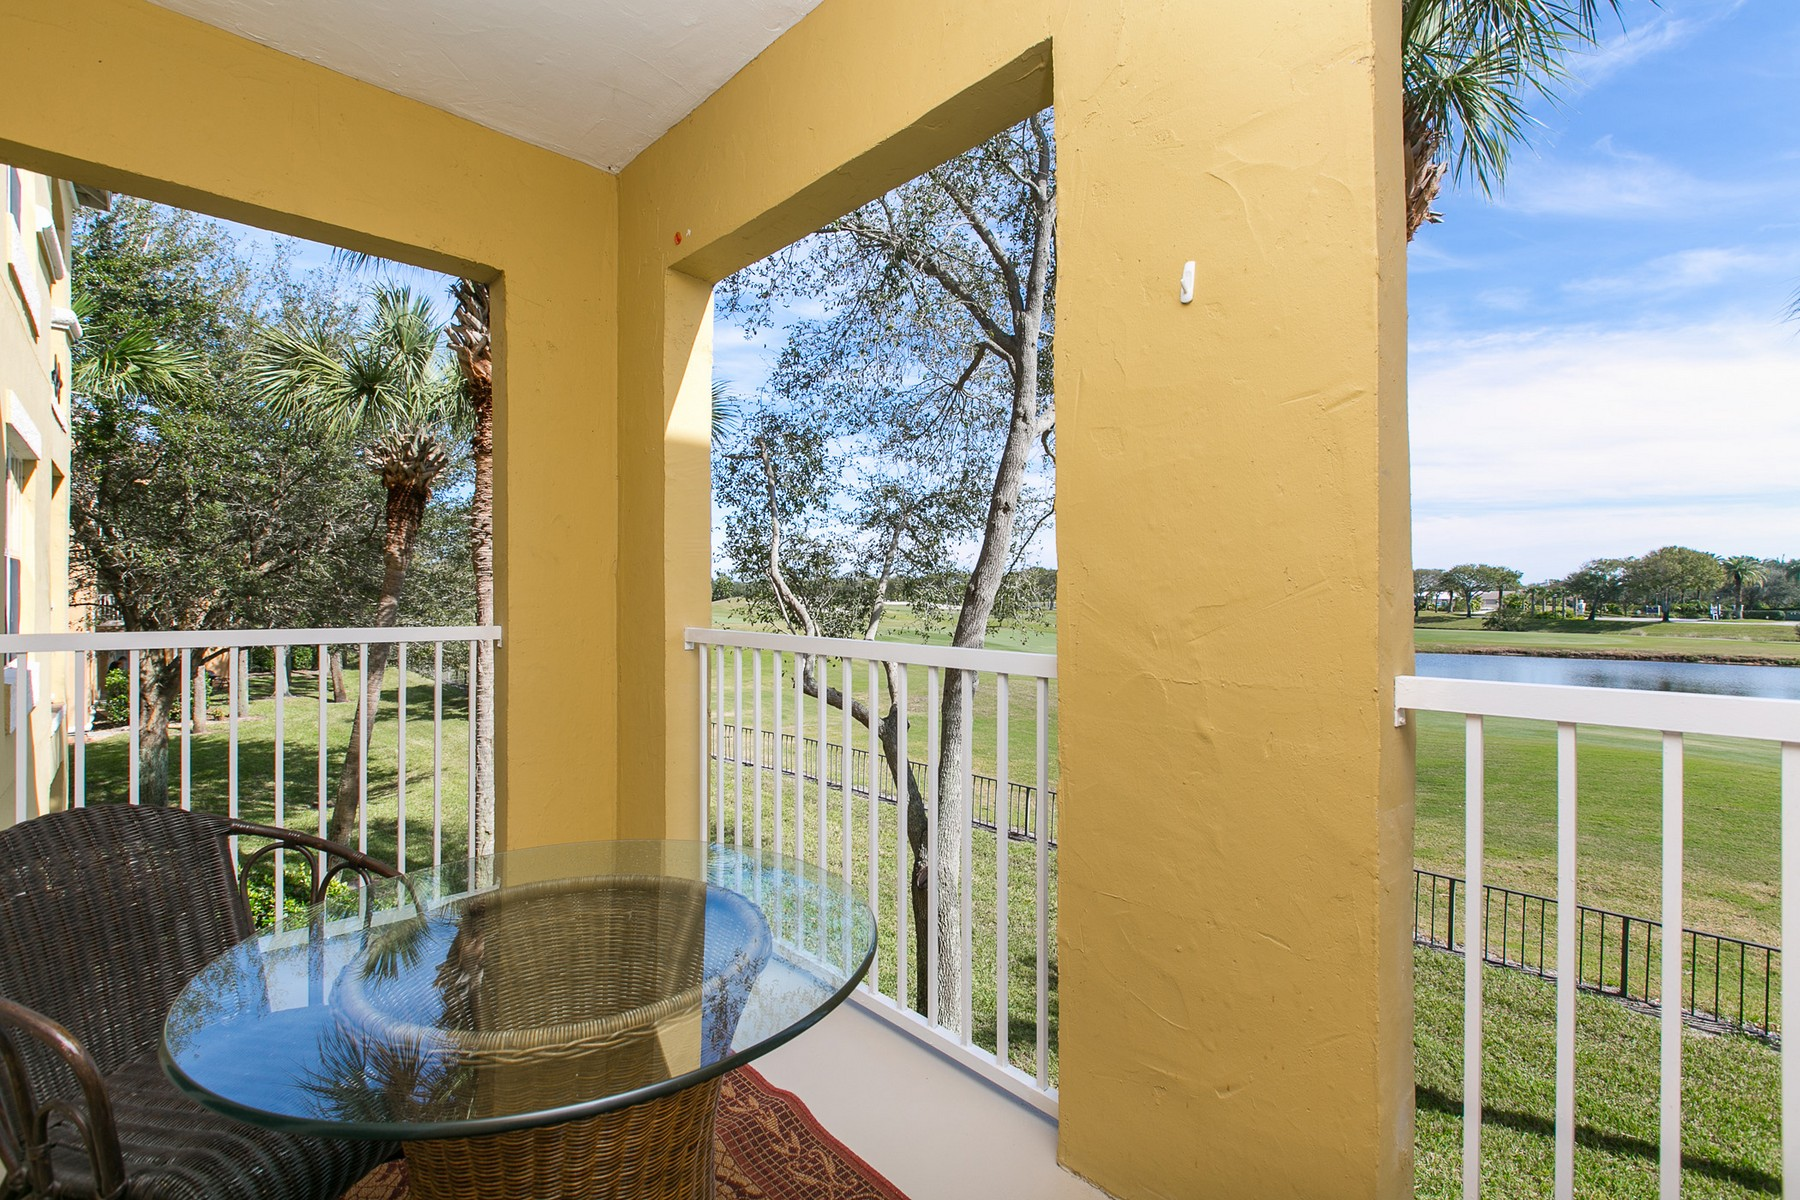 Additional photo for property listing at Totally Renovated and Gorgeous Condo at Fairways at Grand Harbor 5045 Fairways Circle #D203 Vero Beach, Florida 32967 United States